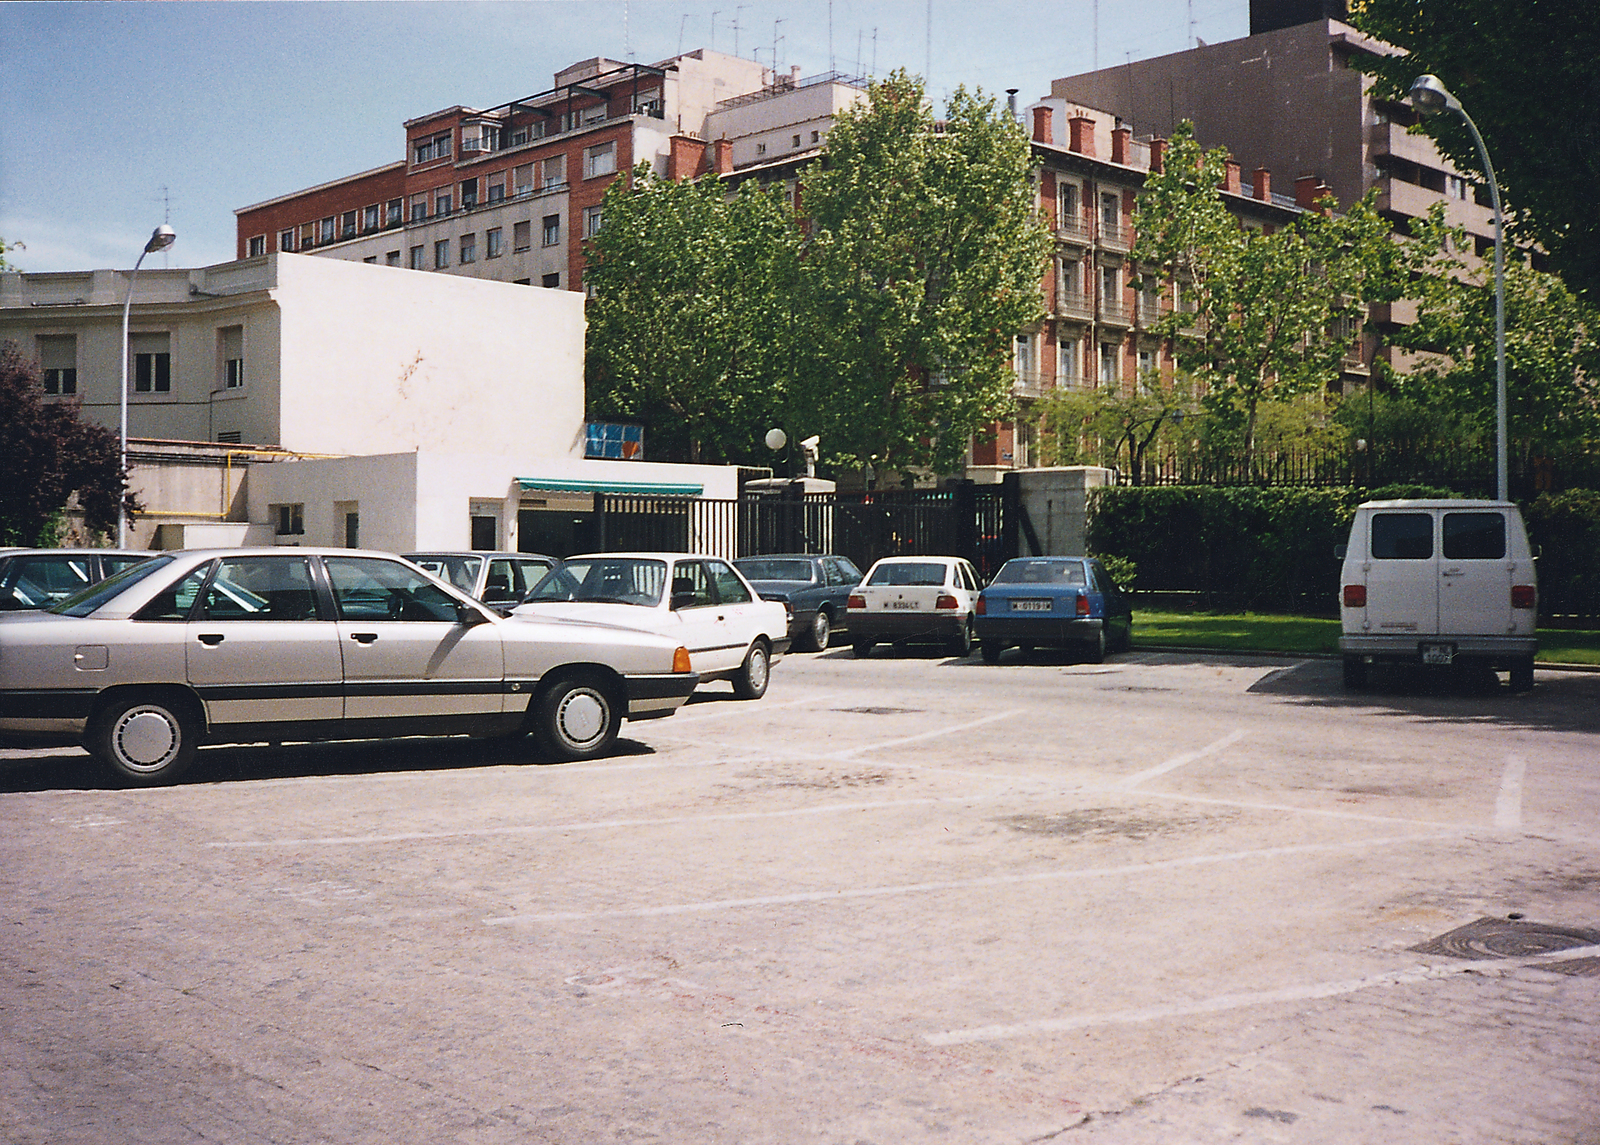 Madrid - Chancery Office Building - 1993